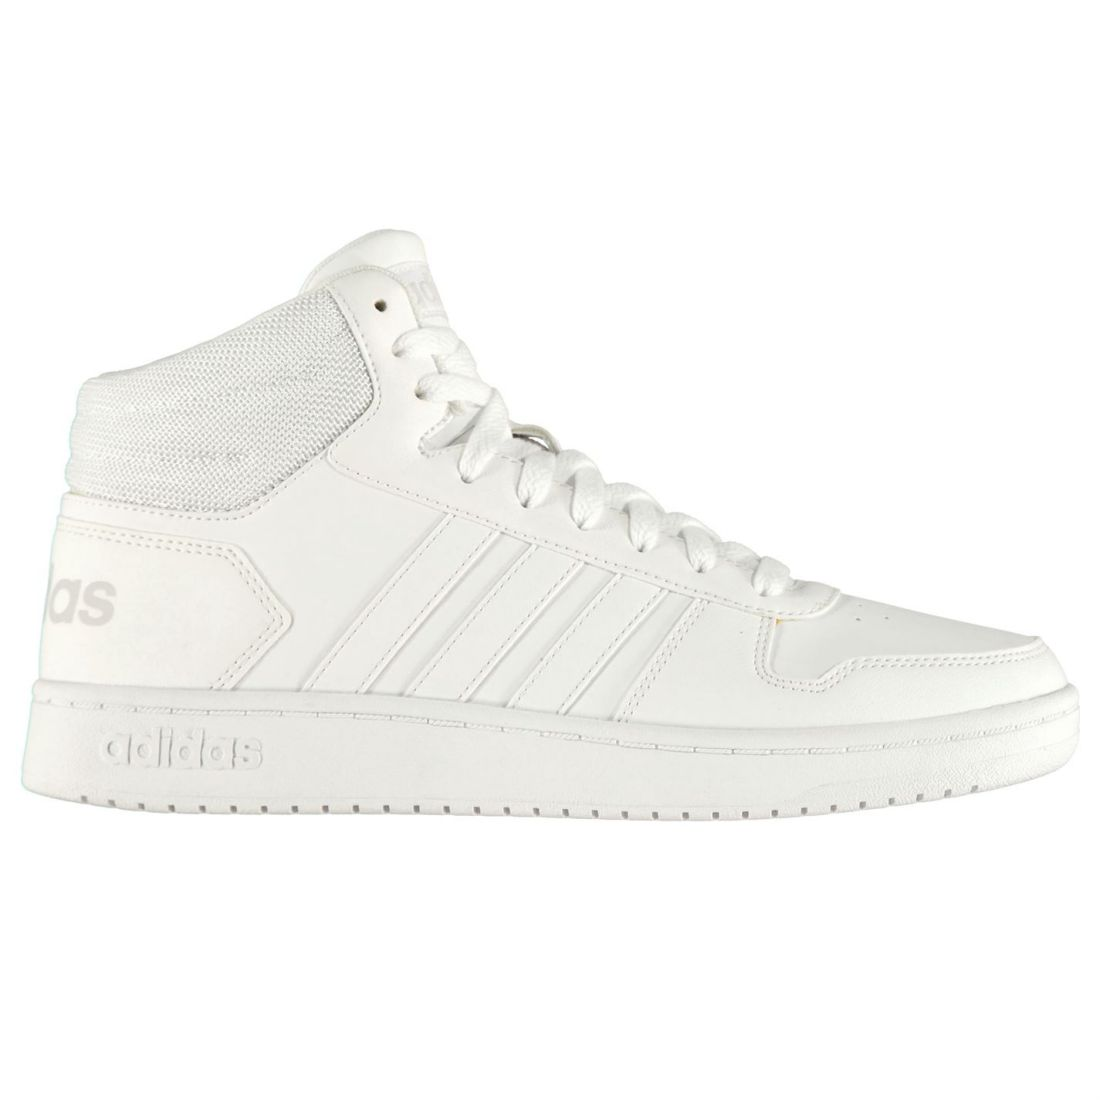 adidas Hoops Mid Shoes Mens Gents High Top Laces Fastened